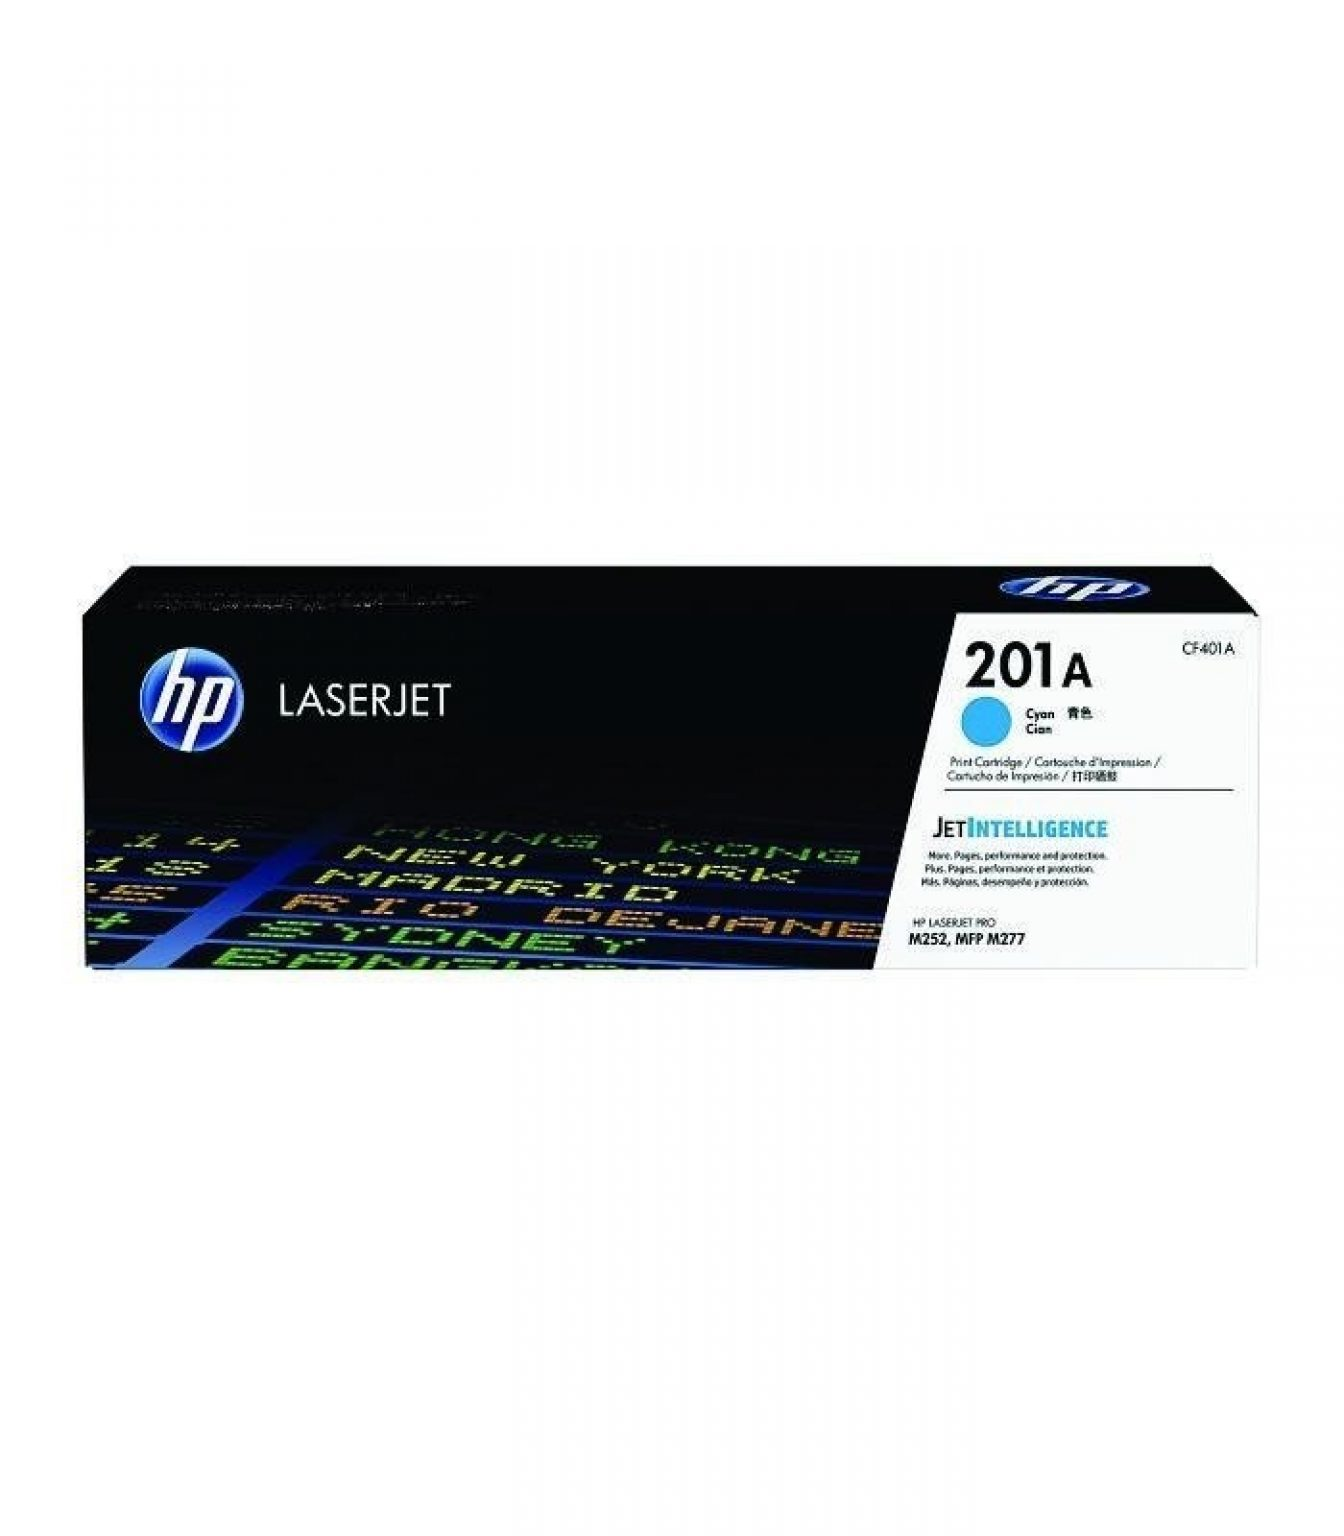 HP - 201A Cyan LaserJet Toner Cartridge [CF401A]